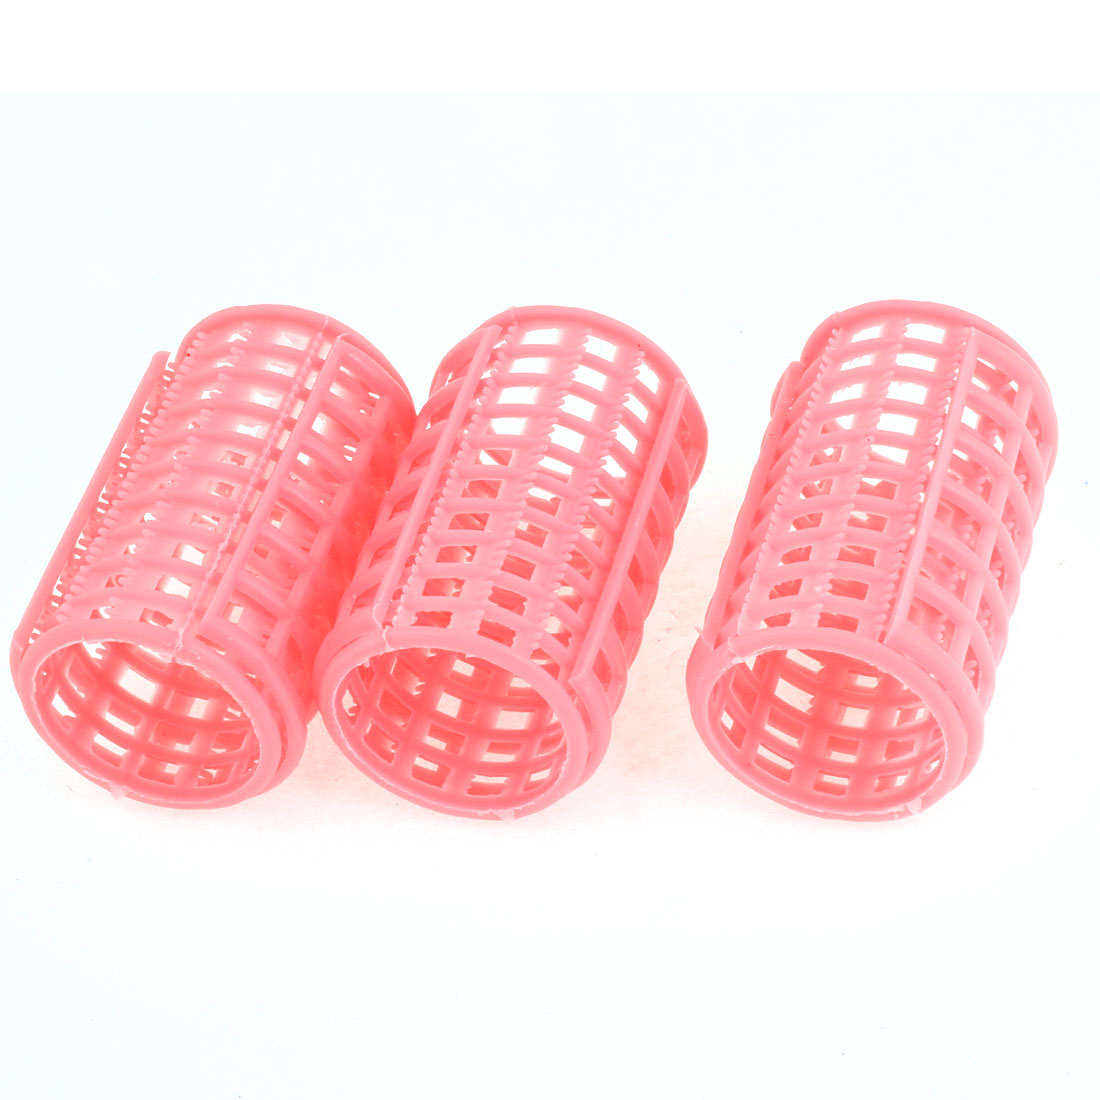 3 Pieces Fuchsia Plastic DIY Hairdressing Hair Curling Roller Curler for Lady